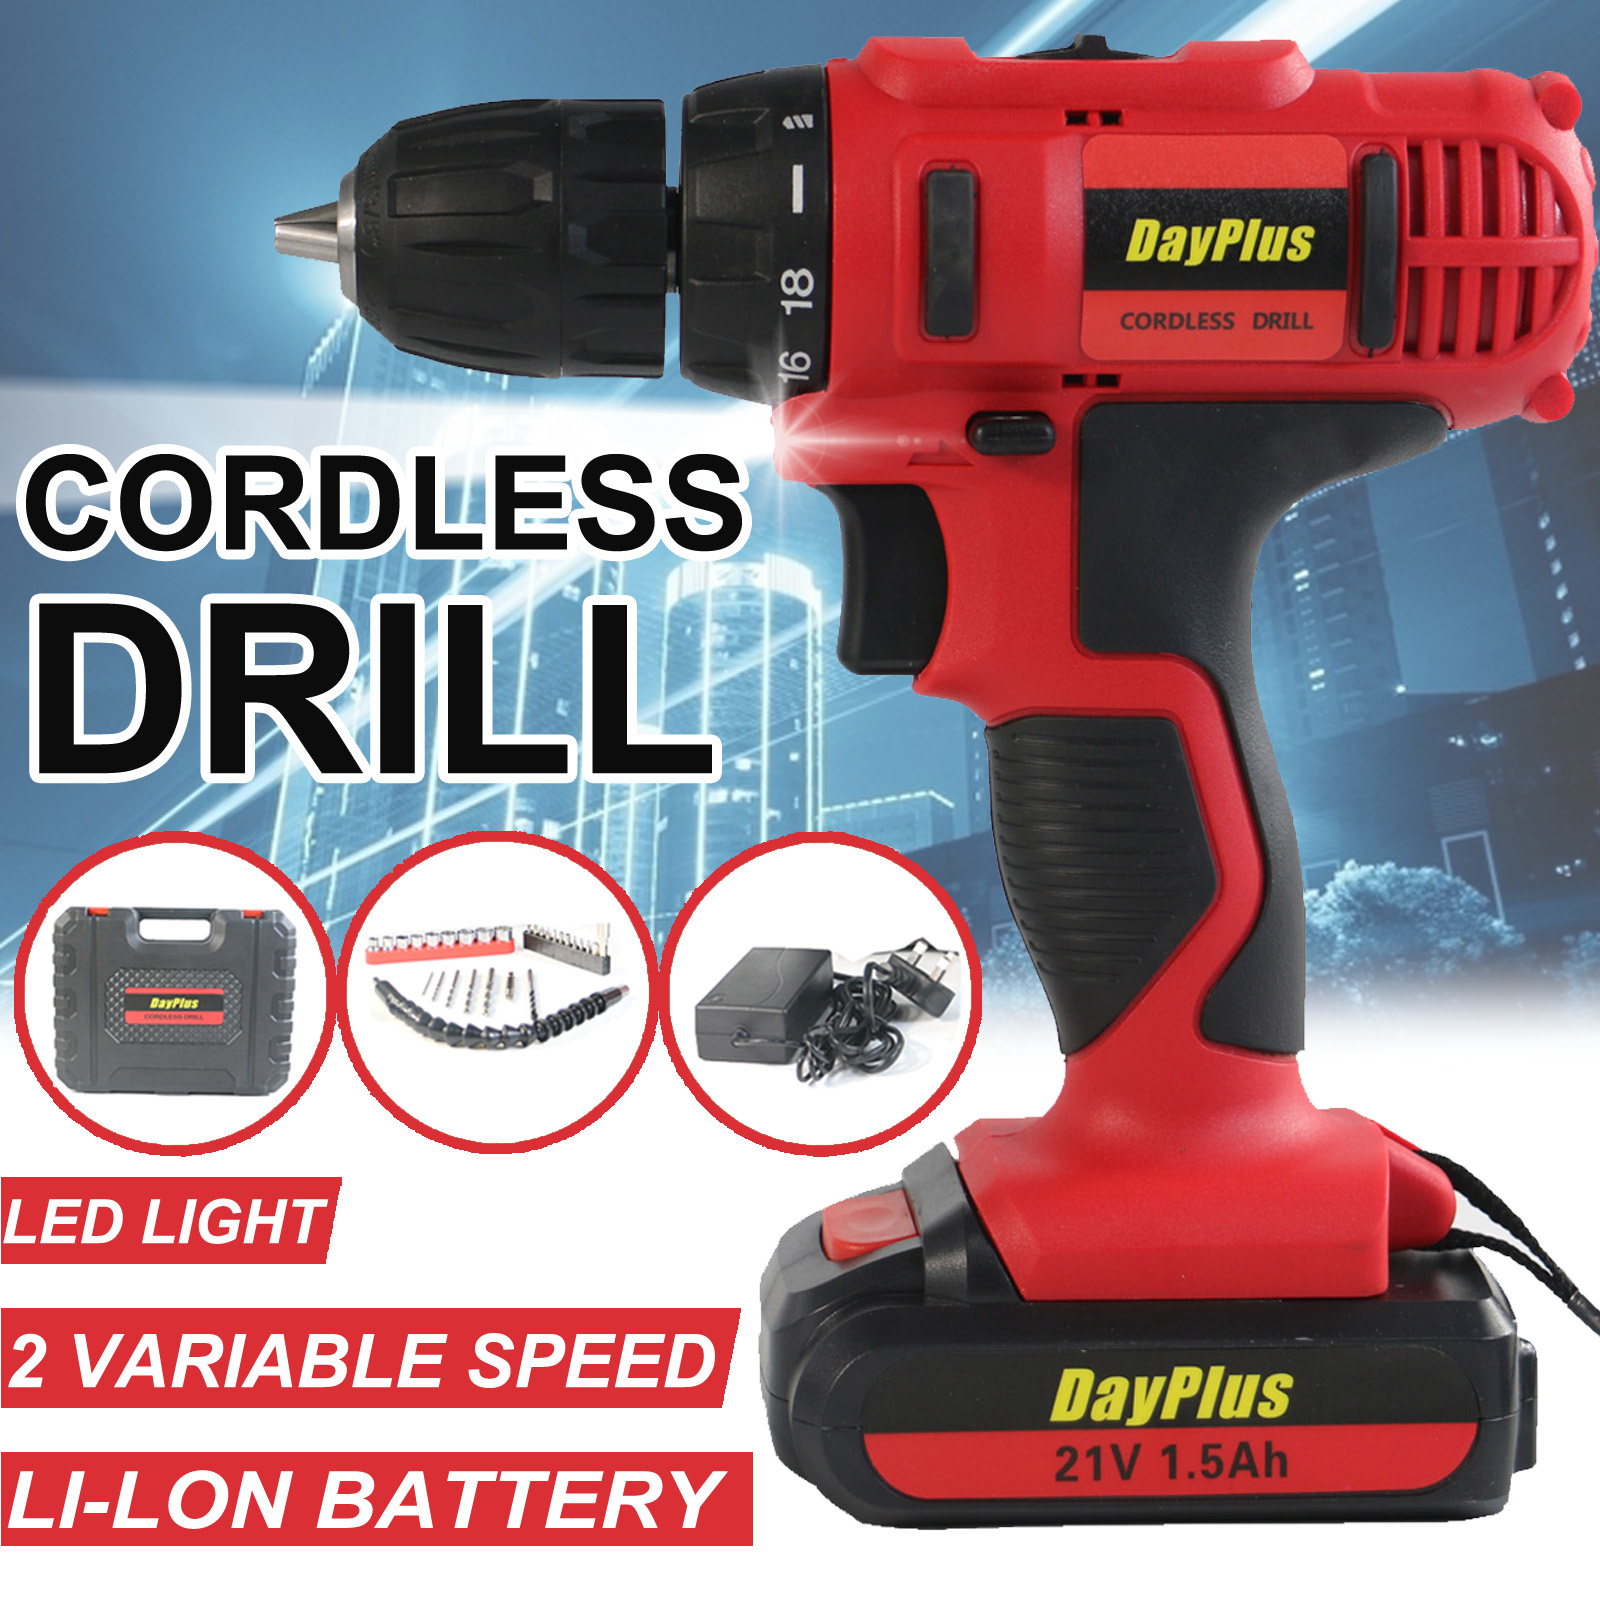 29PCS Accessories 21V Portable Cordless Power Drill Set Impact Screw Driver with 1500mAh Li-Ion Rechargeable Battery 18+1 Torque Setting 45N.m Variable Speed Control with LED Light Carrying Case